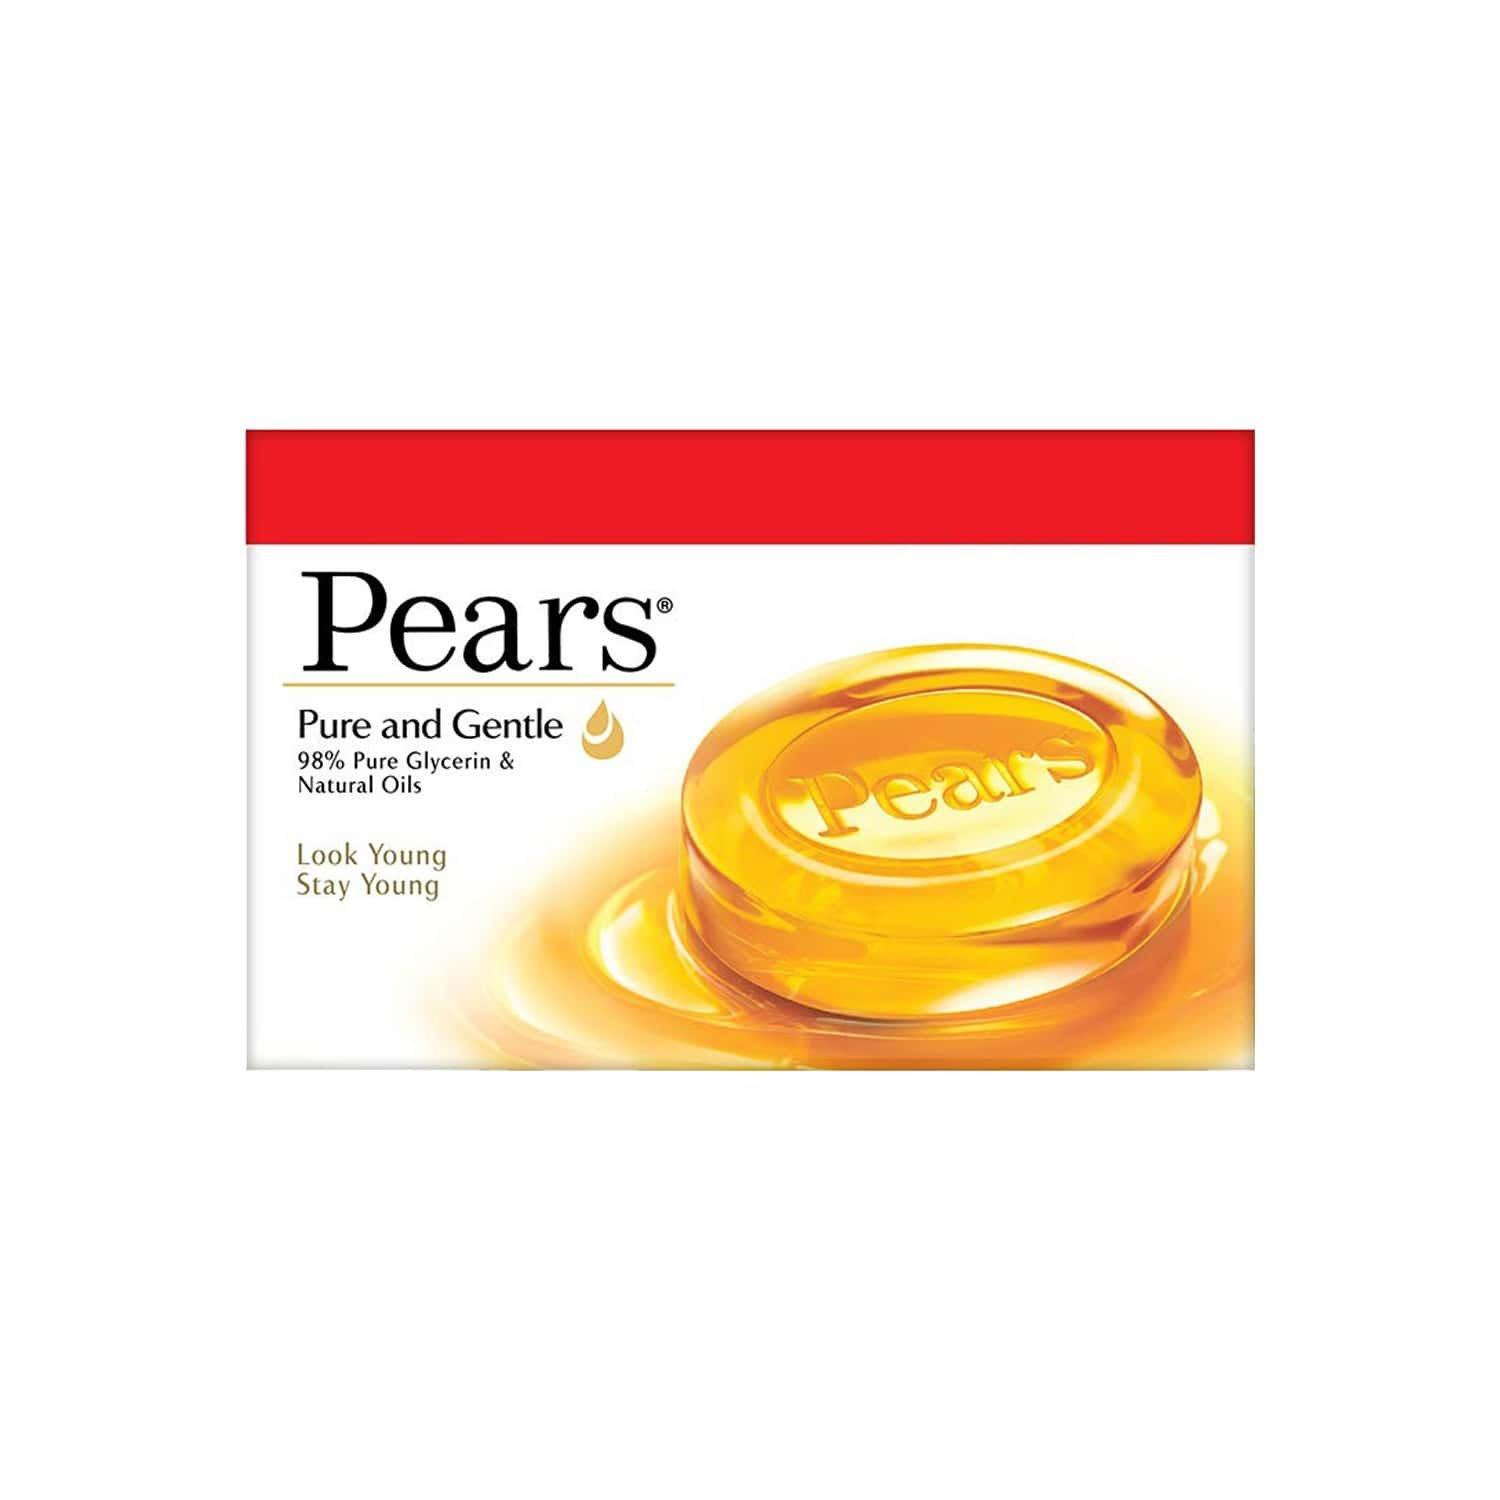 Pears Moisturising Bathing Bar Soap With Glycerine Pure & Gentle - For Golden Glow - (125g X 5)